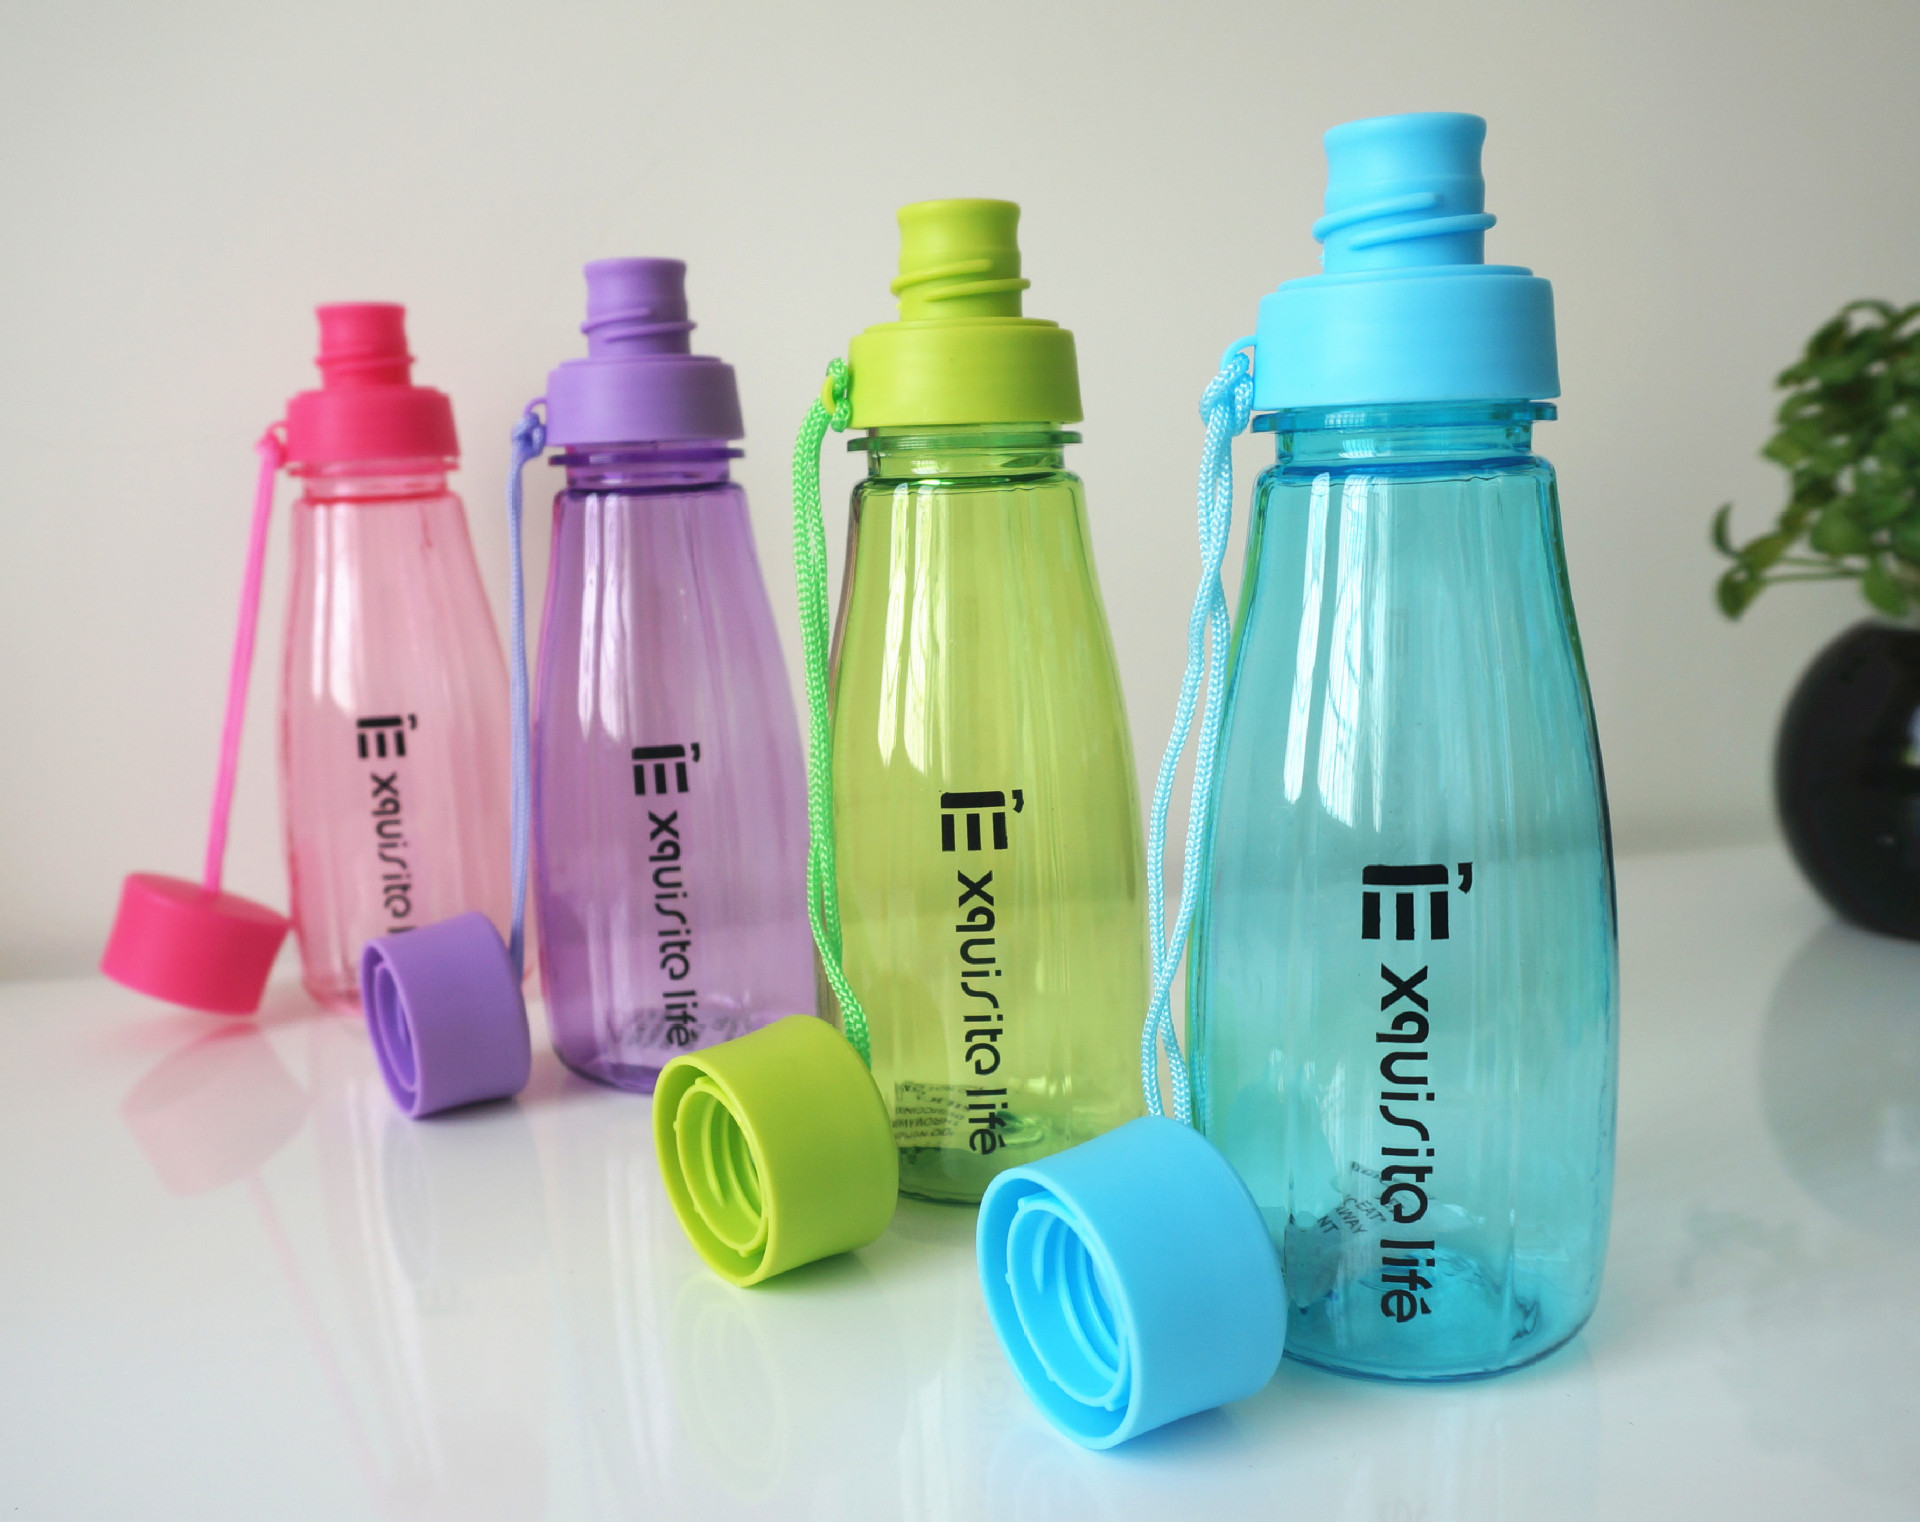 Creative small gifts soda bottles water flask my portable space water bottles fashion sports bottle plastic leakproof water cups(China (Mainland))